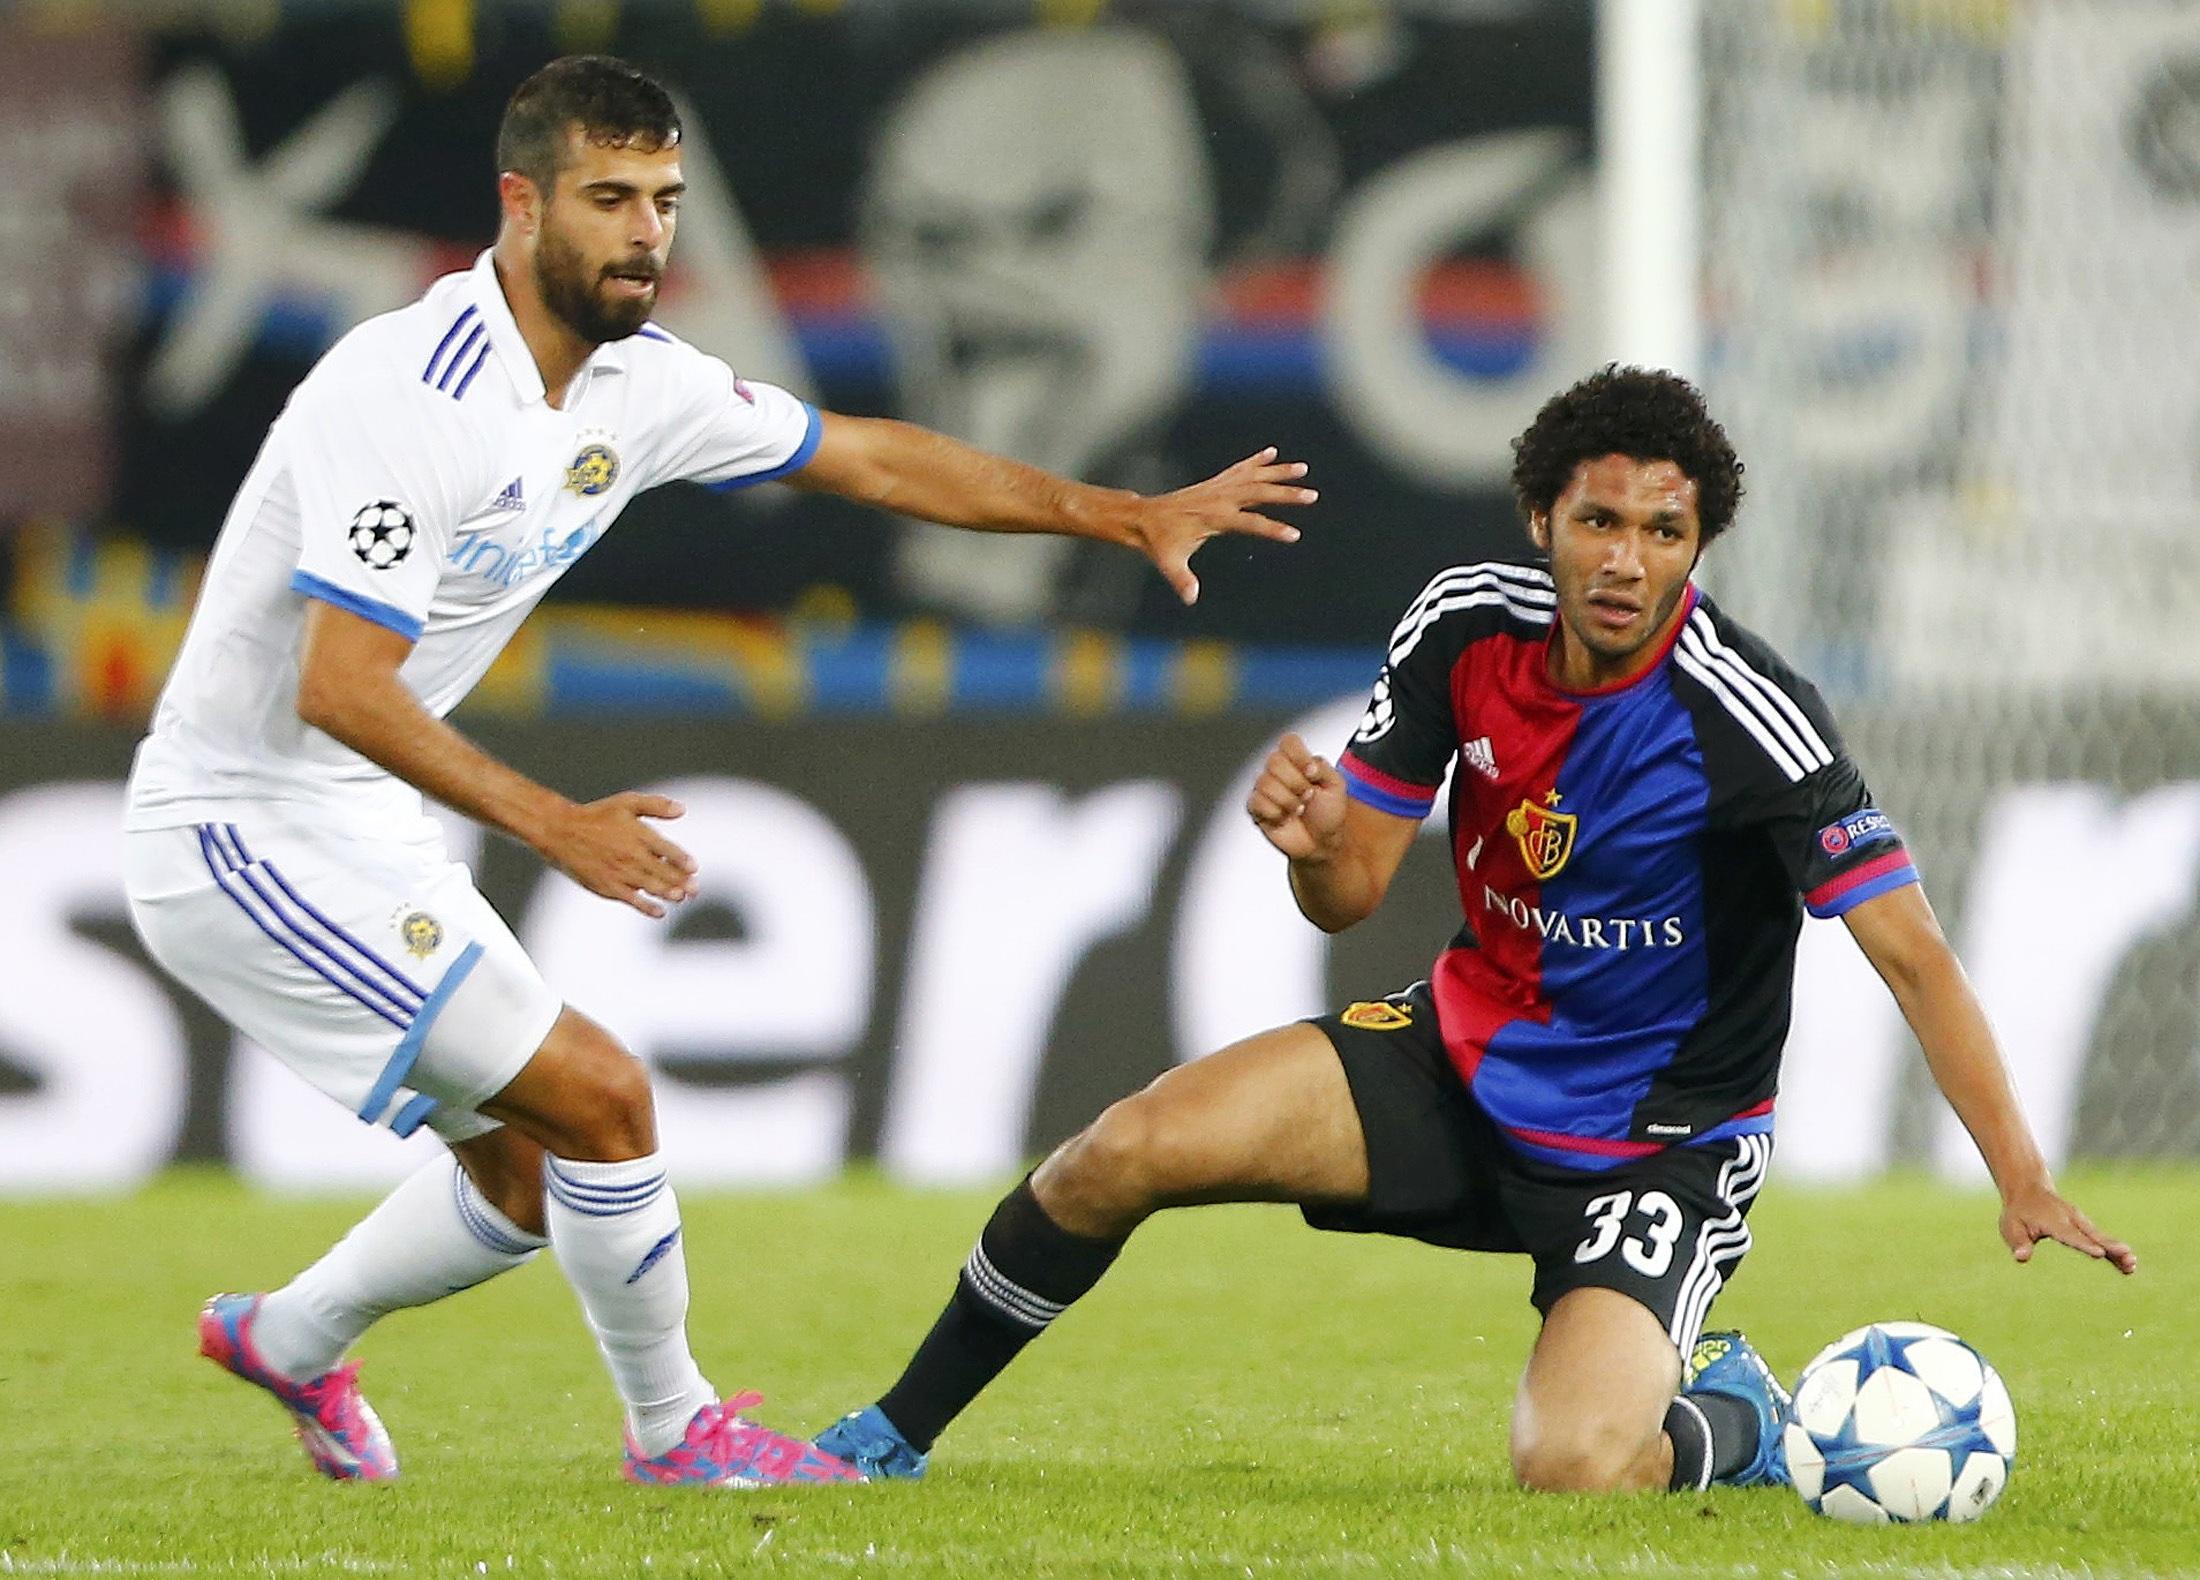 FC Basel's Mohamed Elneny (R) fights for the ball against Maccabi Tel Aviv's Eden Ben Basat during their Champions League play-off first leg soccer match at the St. Jakob Park stadium in Basel August 19, 2015. REUTERS/Arnd Wiegmann